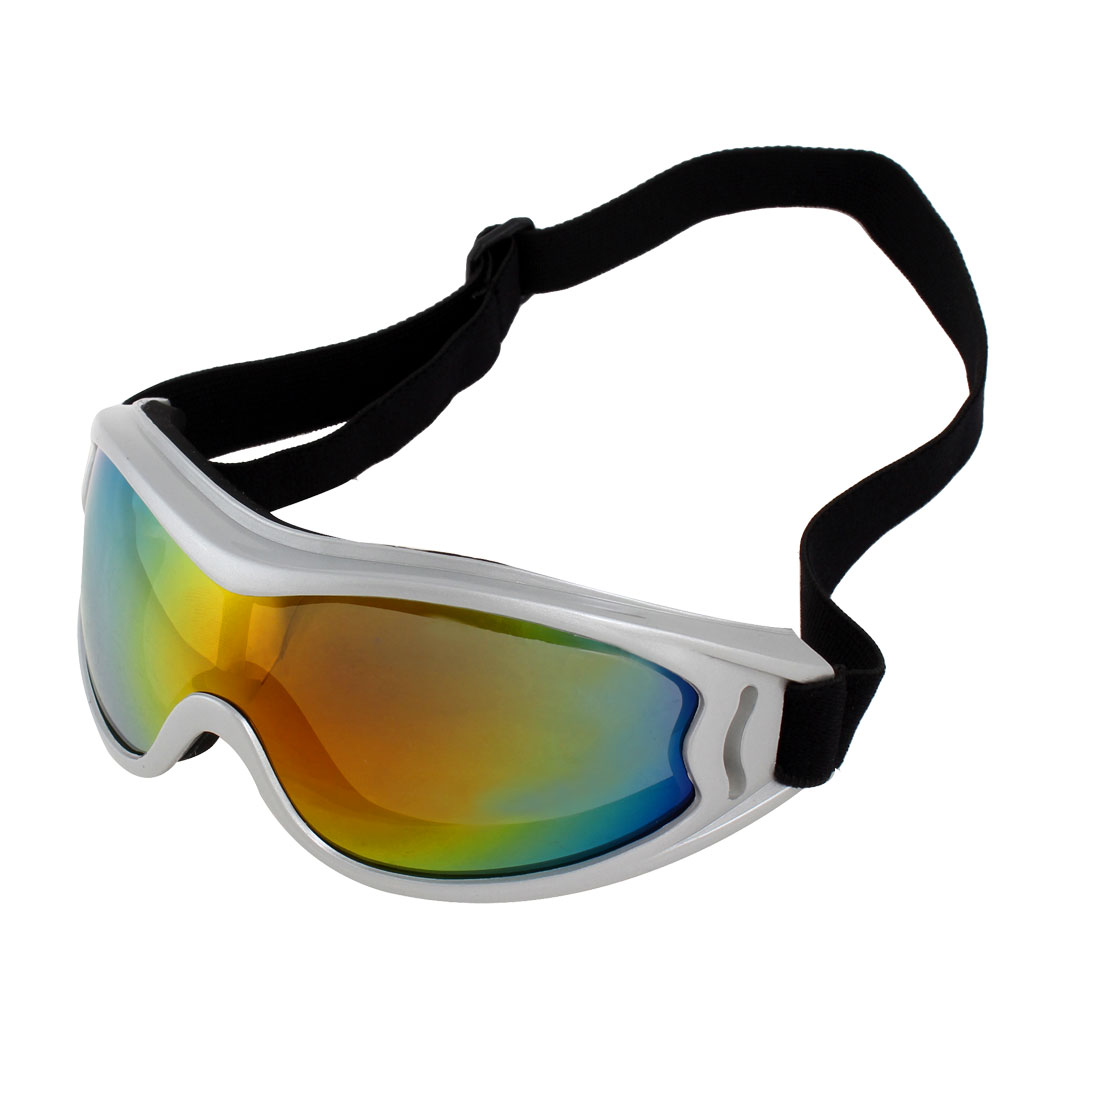 Silver Tone Full Rim Tinted Lens Motorcycle Ski Snowboard Sports Goggles Sunglasses